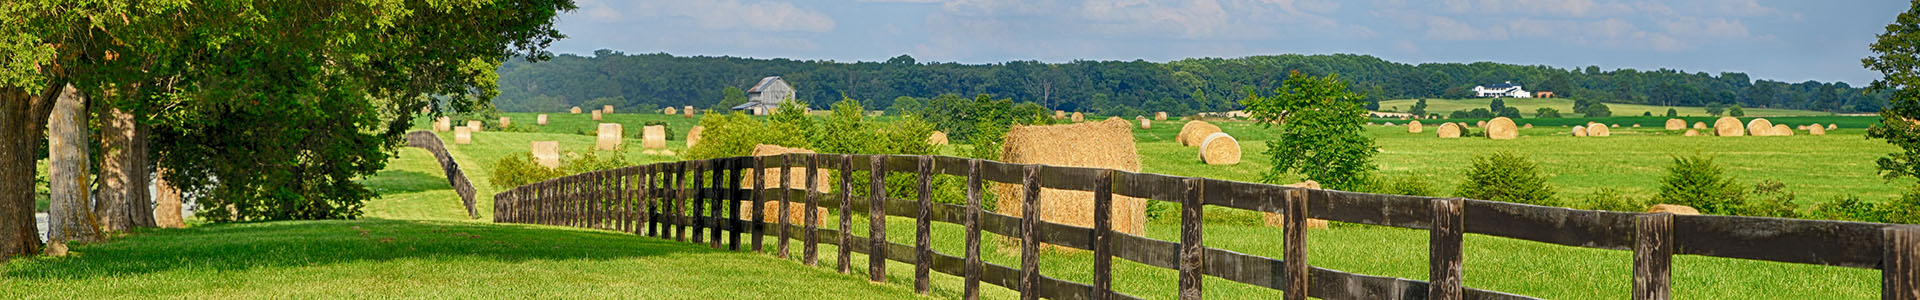 Farms in Louisa County VA for Sale